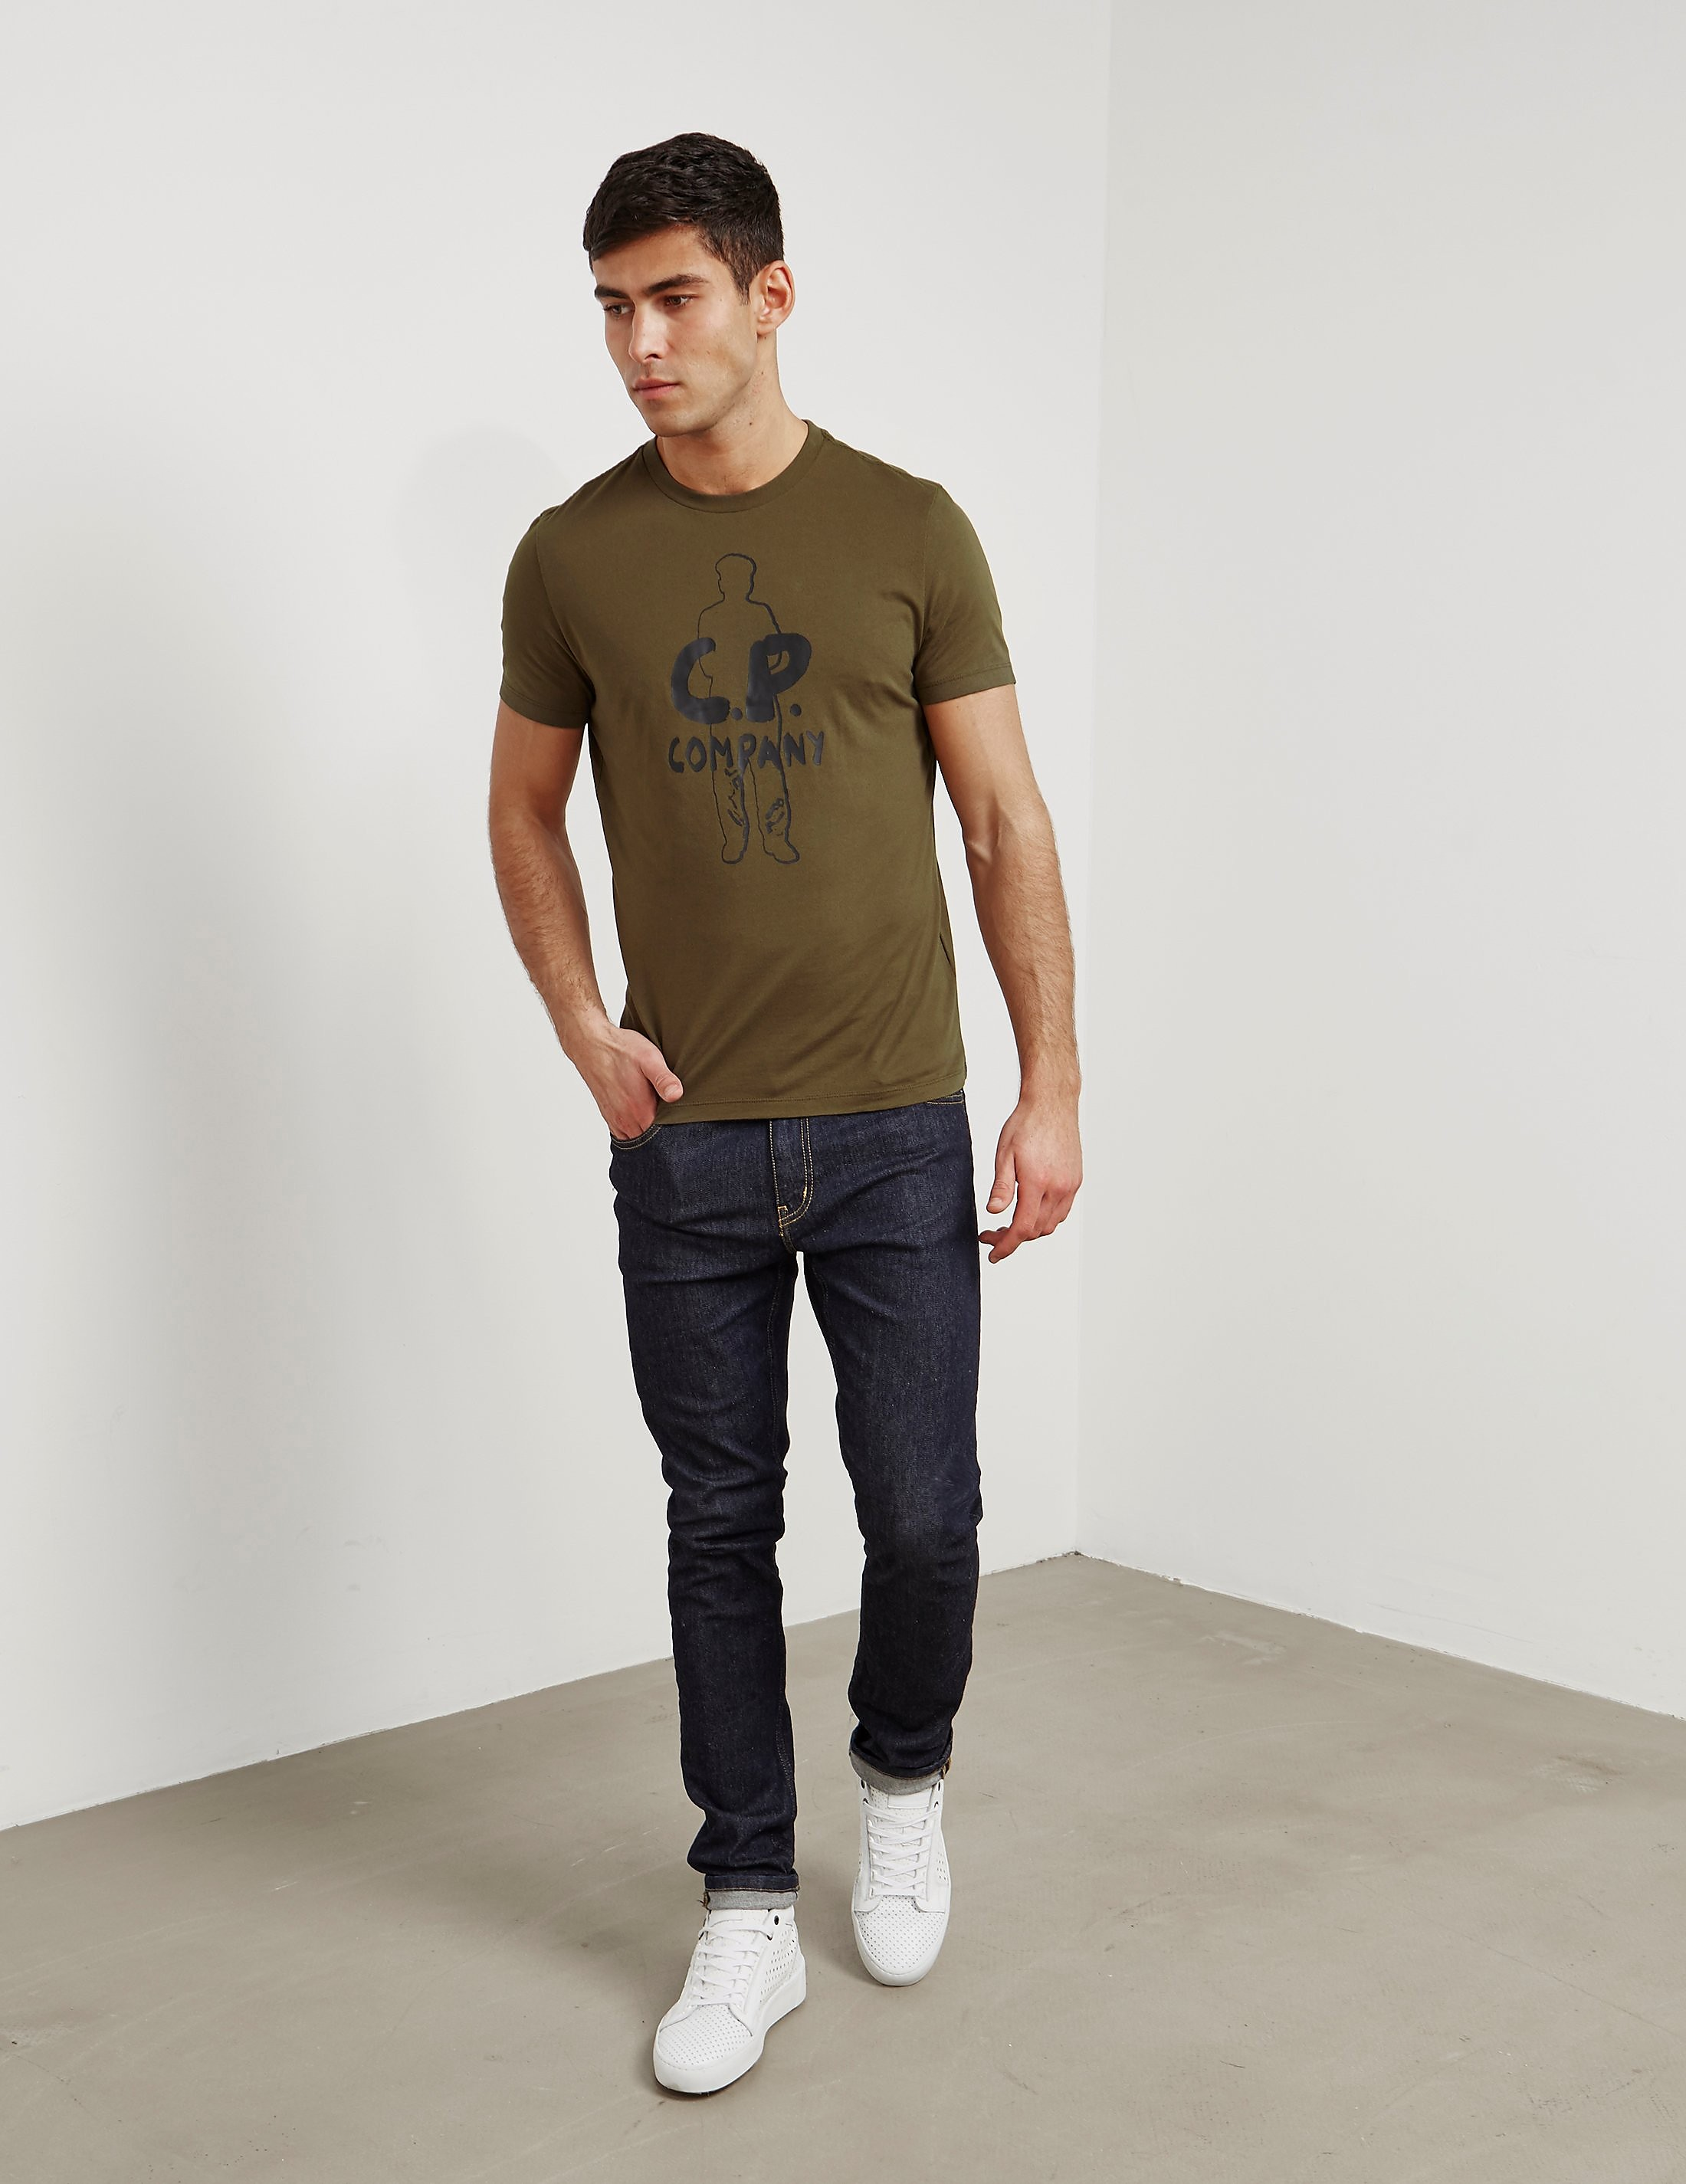 CP Company Sailor Short Sleeve T-Shirt